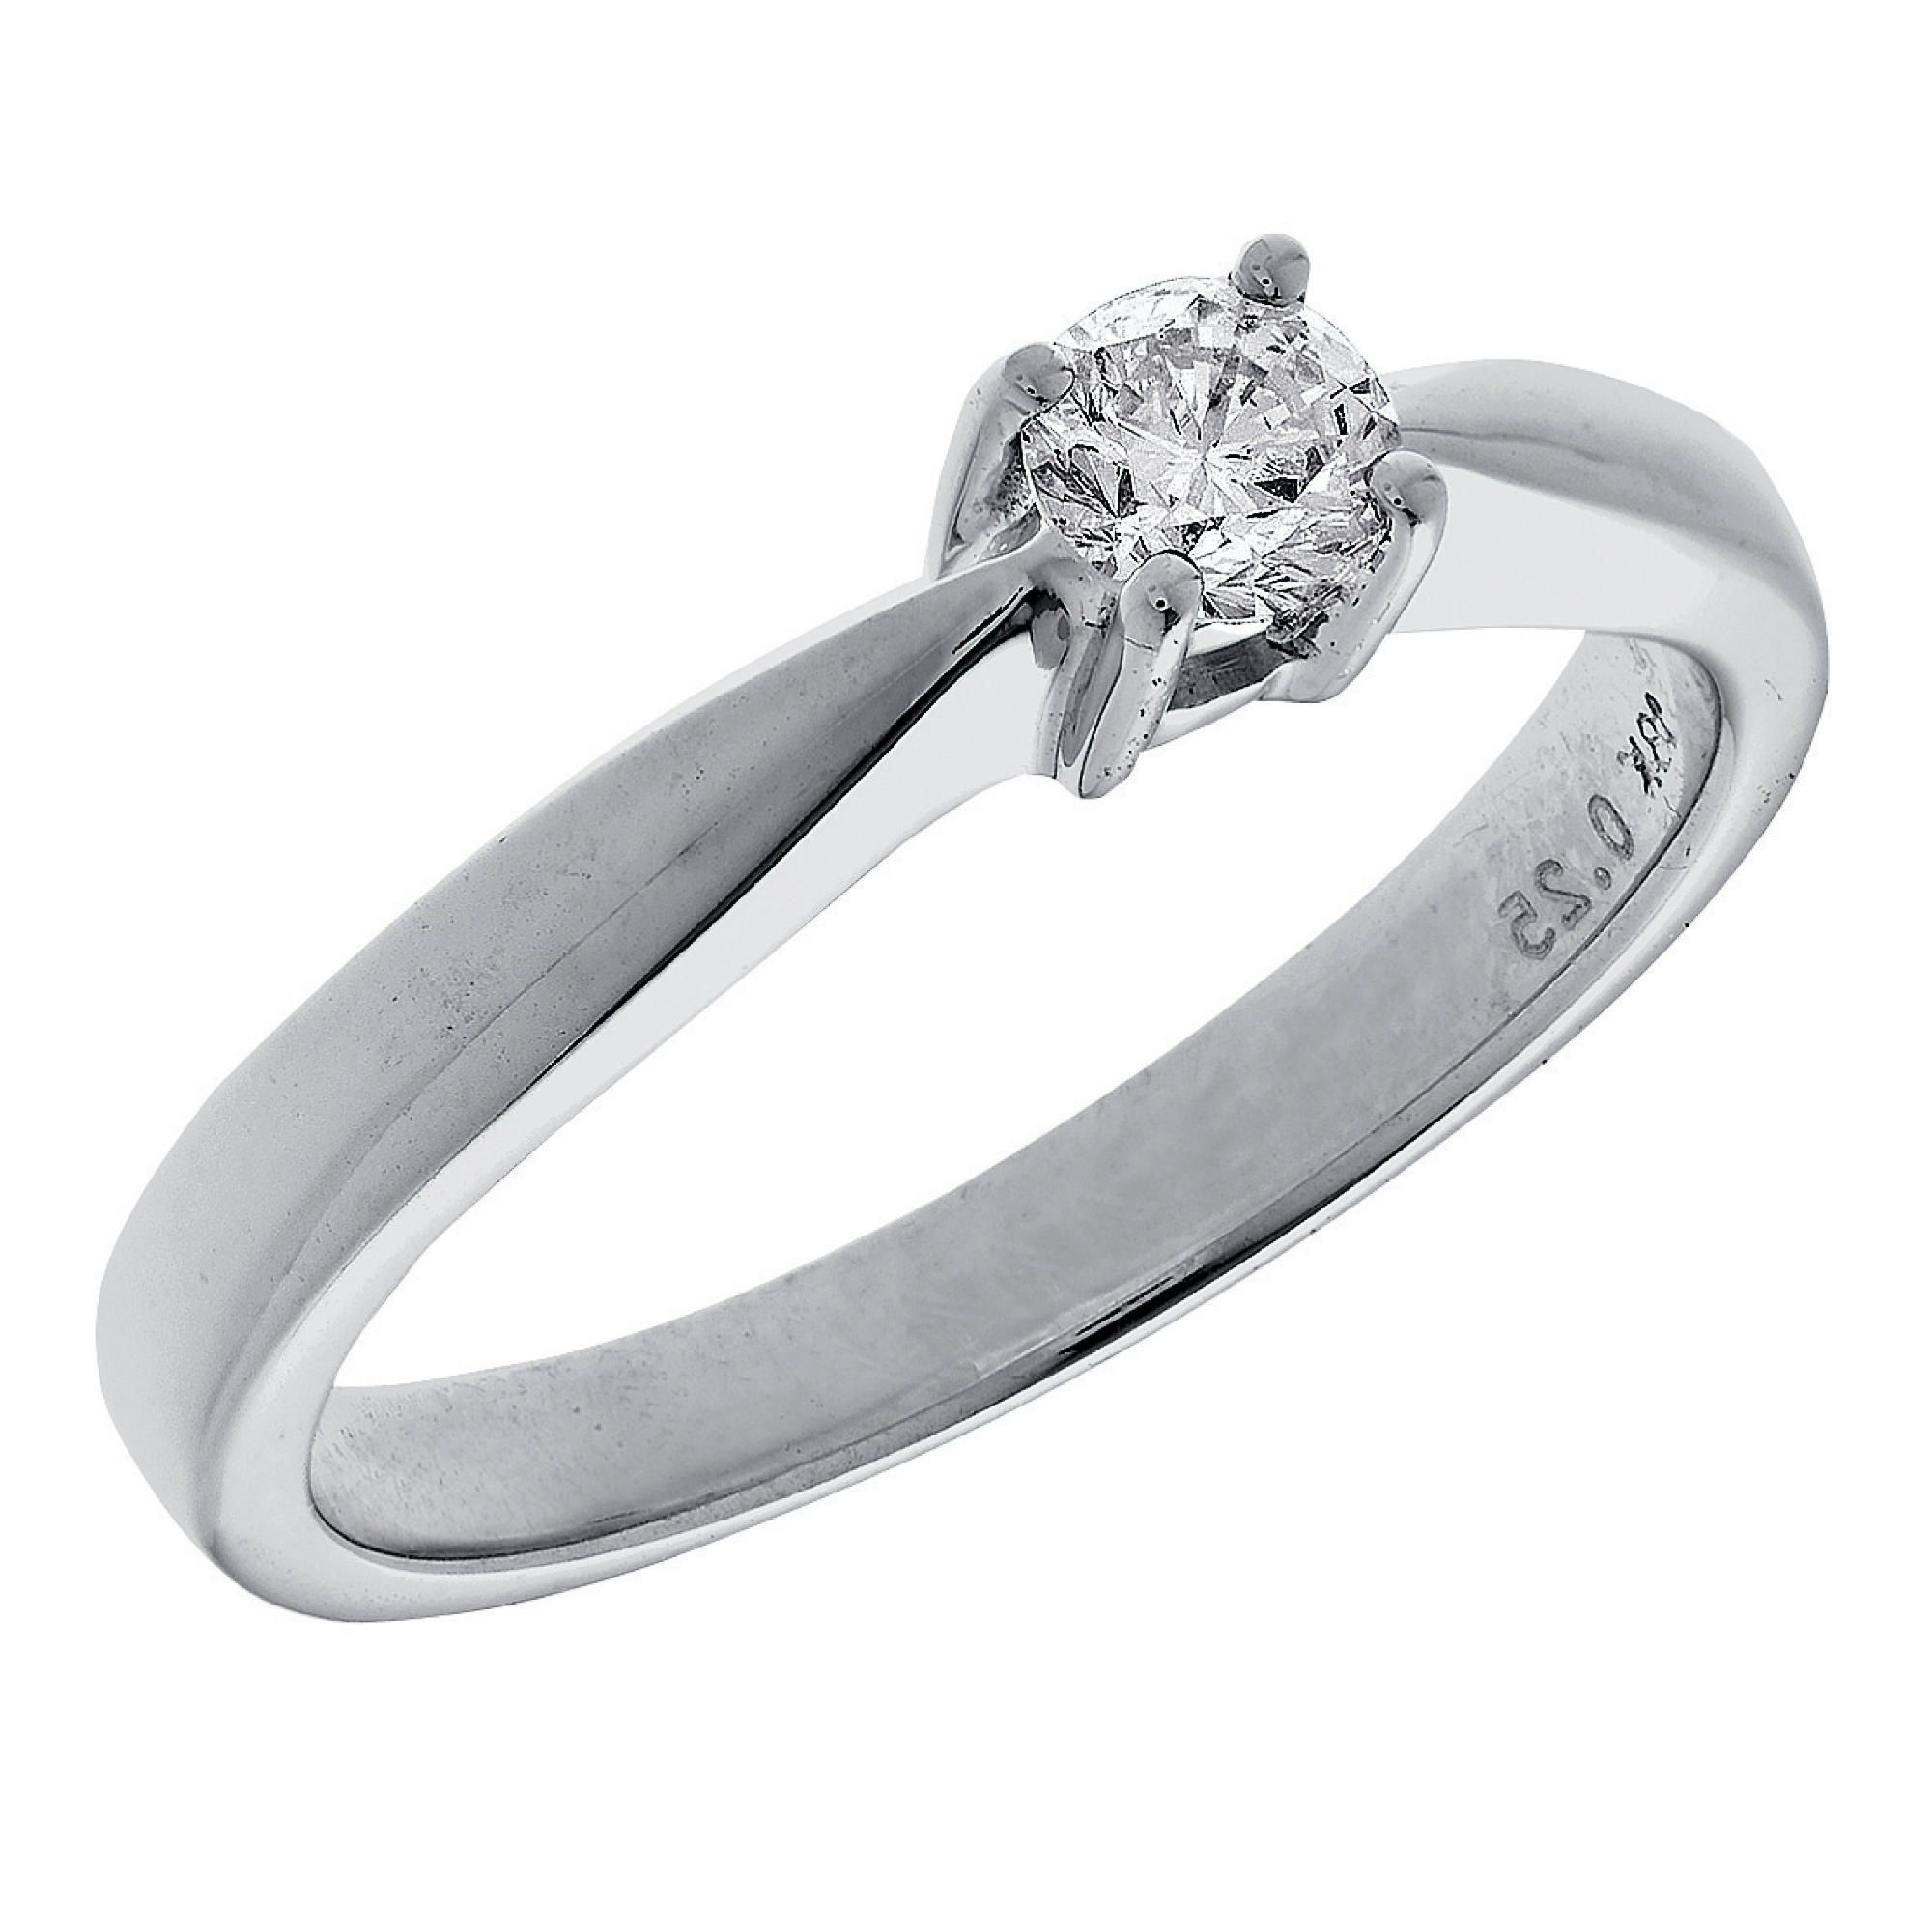 18ct White Gold 25Pt Diamond Solitaire Ring, P at Tesco Direct